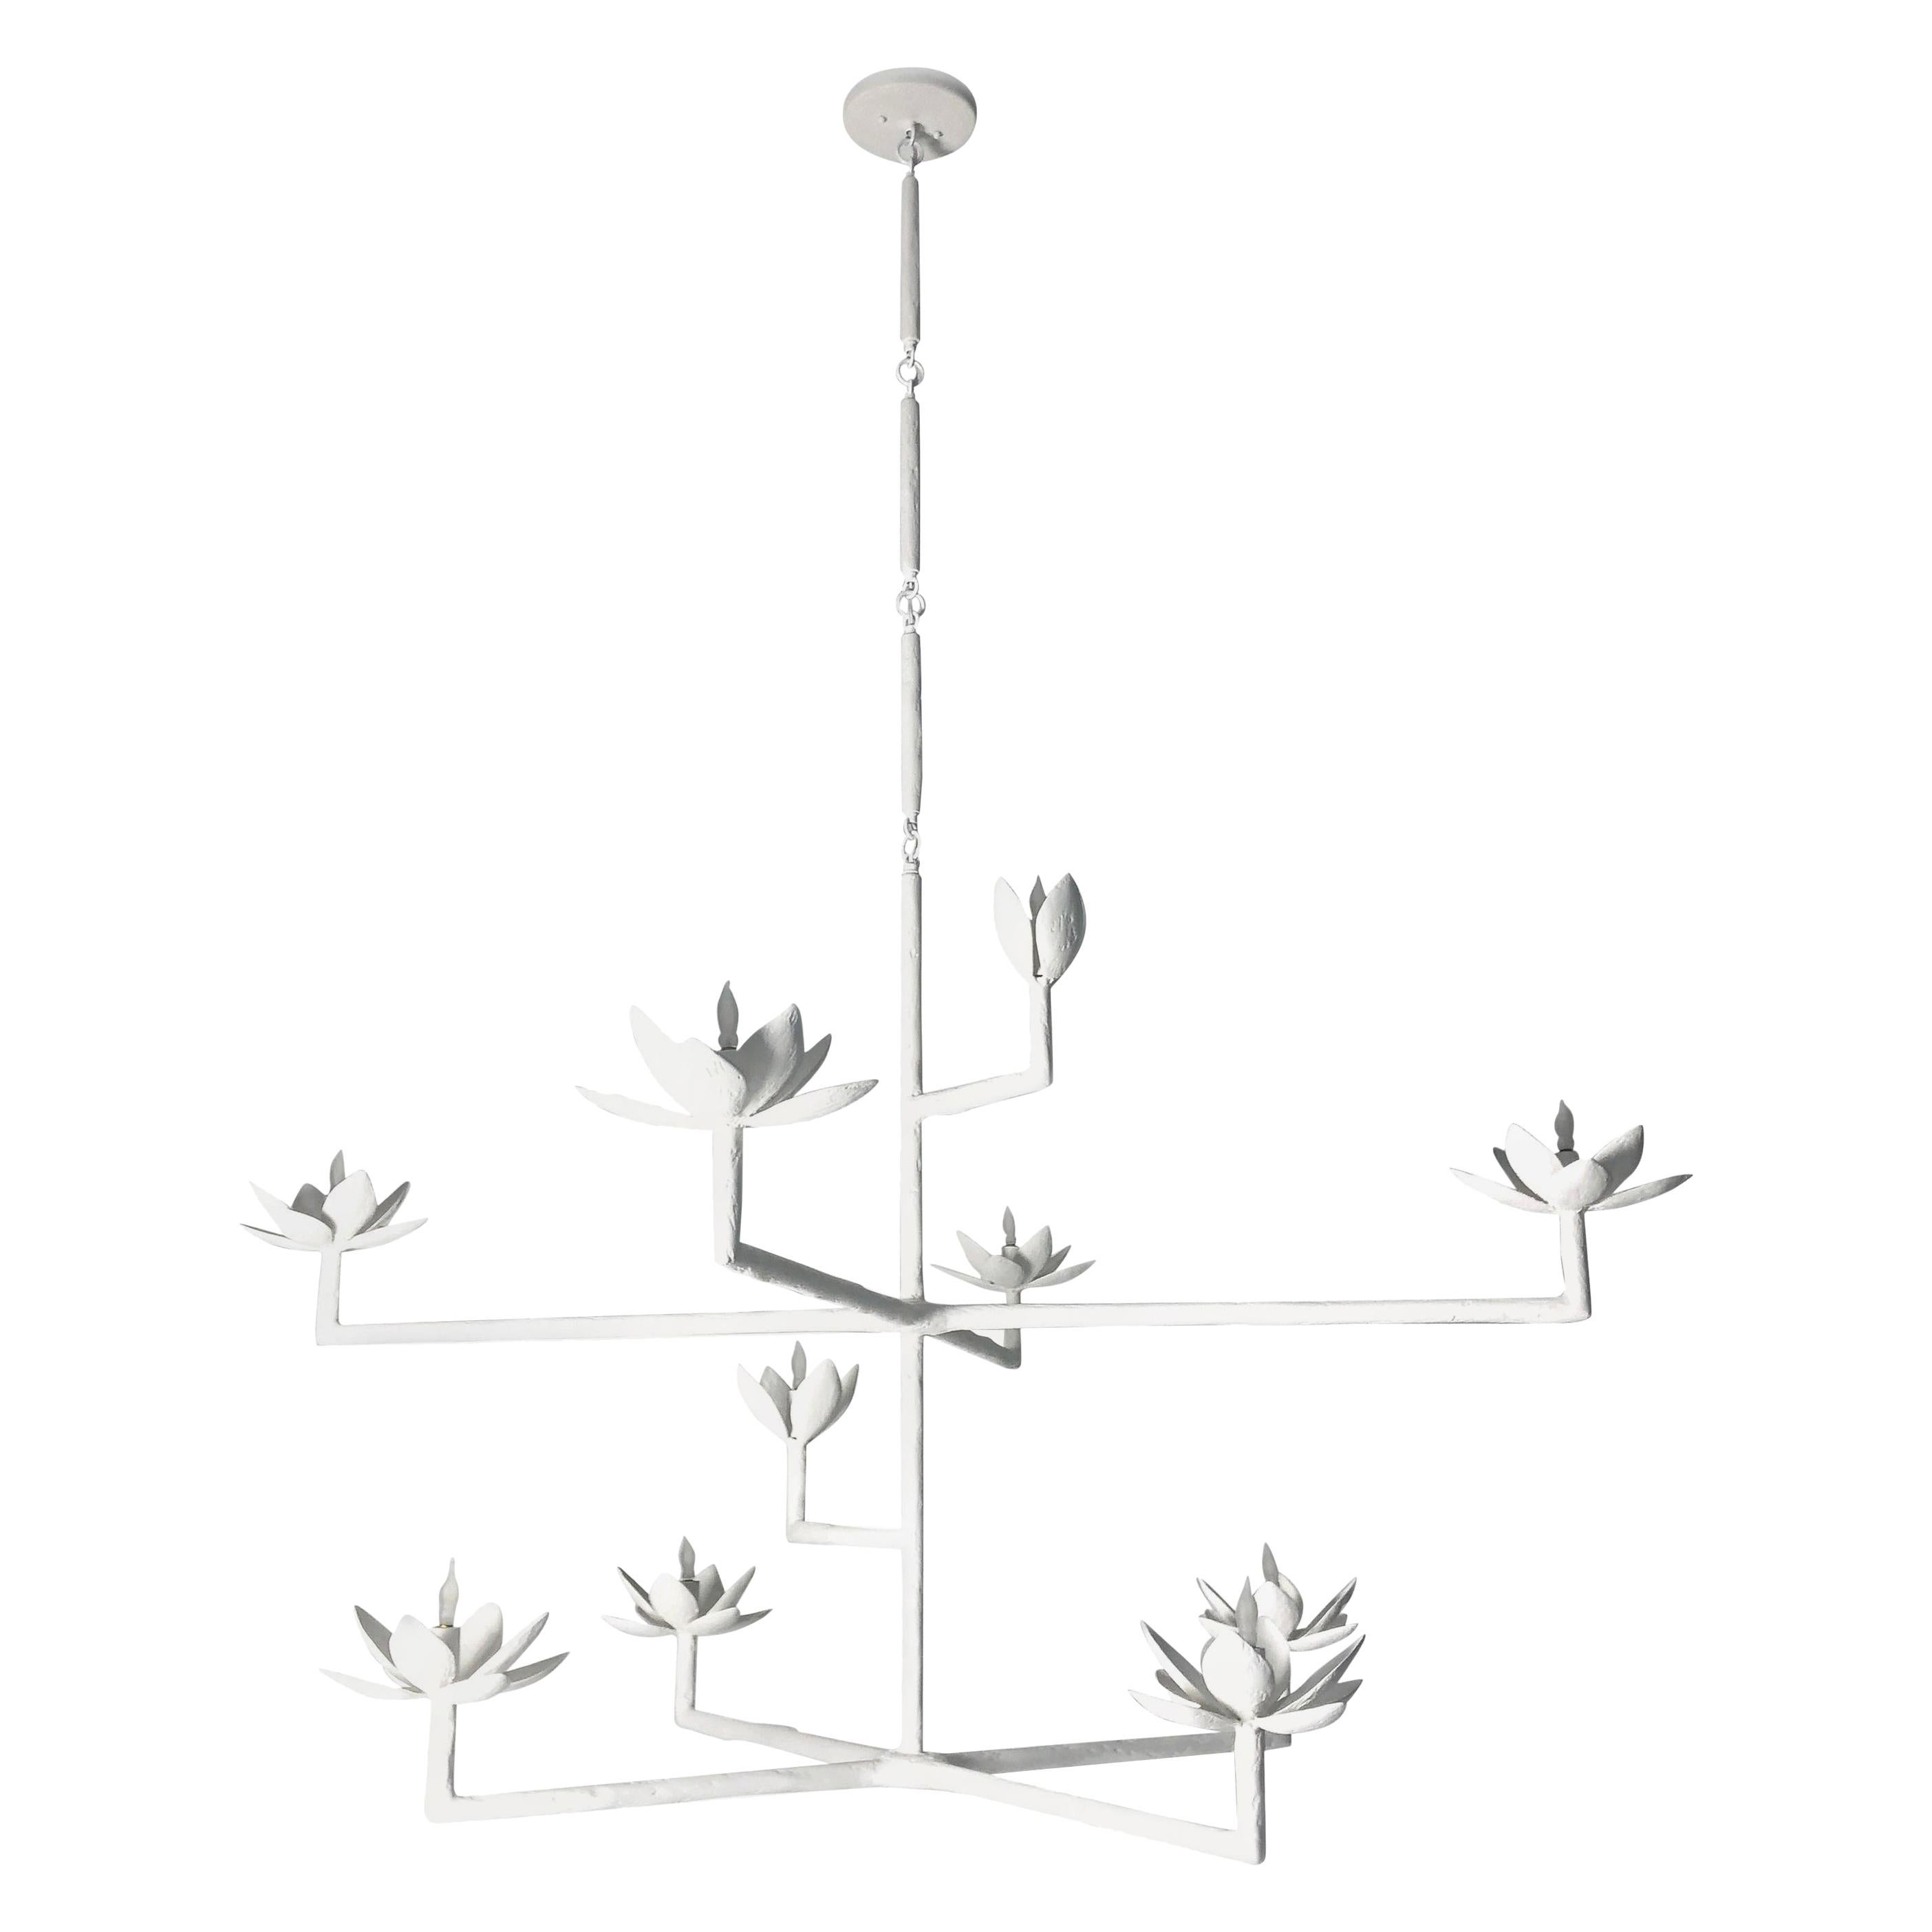 Vosges Chandelier by Bourgeois Boheme Atelier